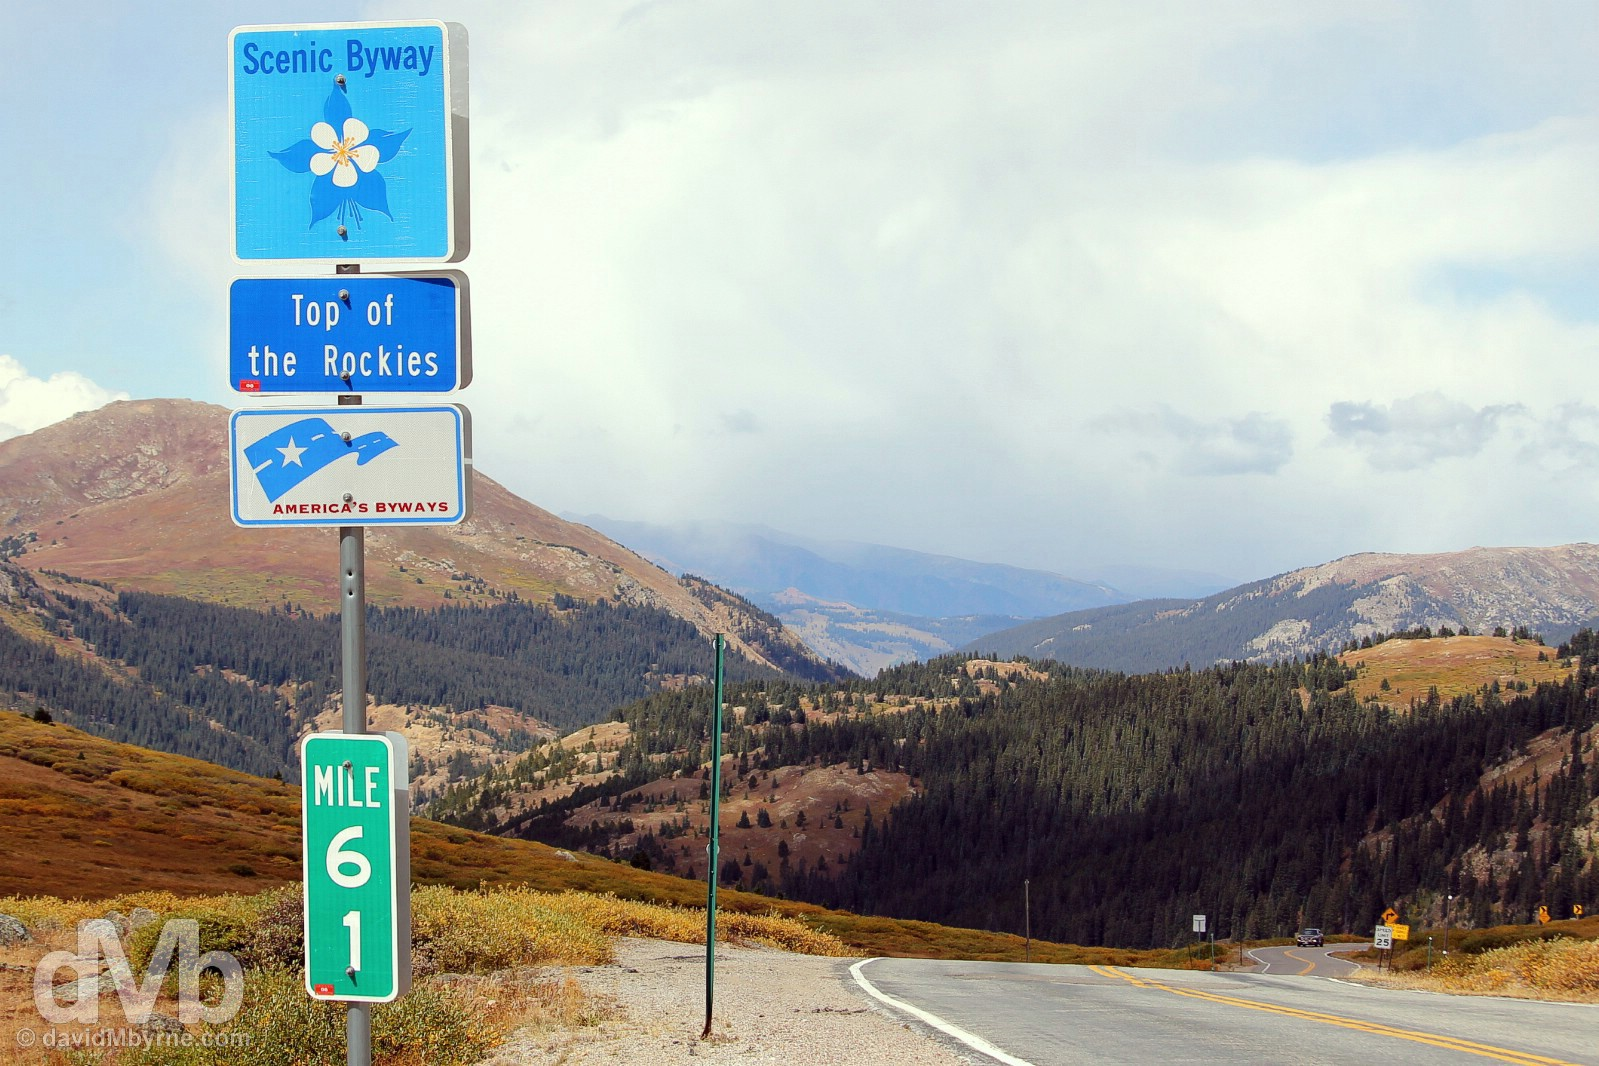 Top of The Rockies National Scenic Byway signage on Independence Pass, Colorado State Route 82, central Colorado, USA. September 13, 2016.